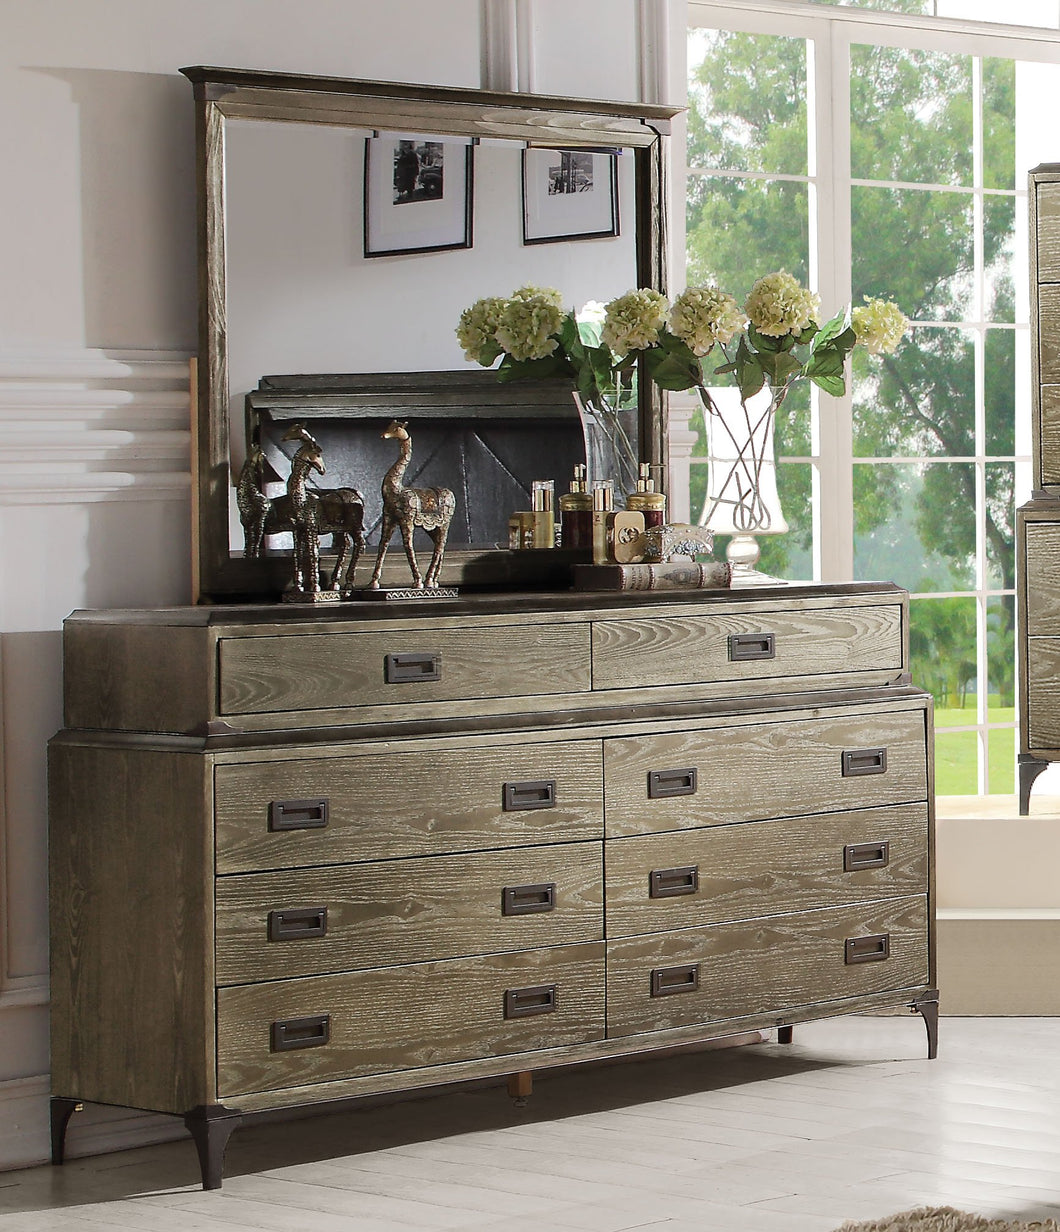 Acme 23925 Athouman Weather Oak 8 Drawer Dresser and Mirror